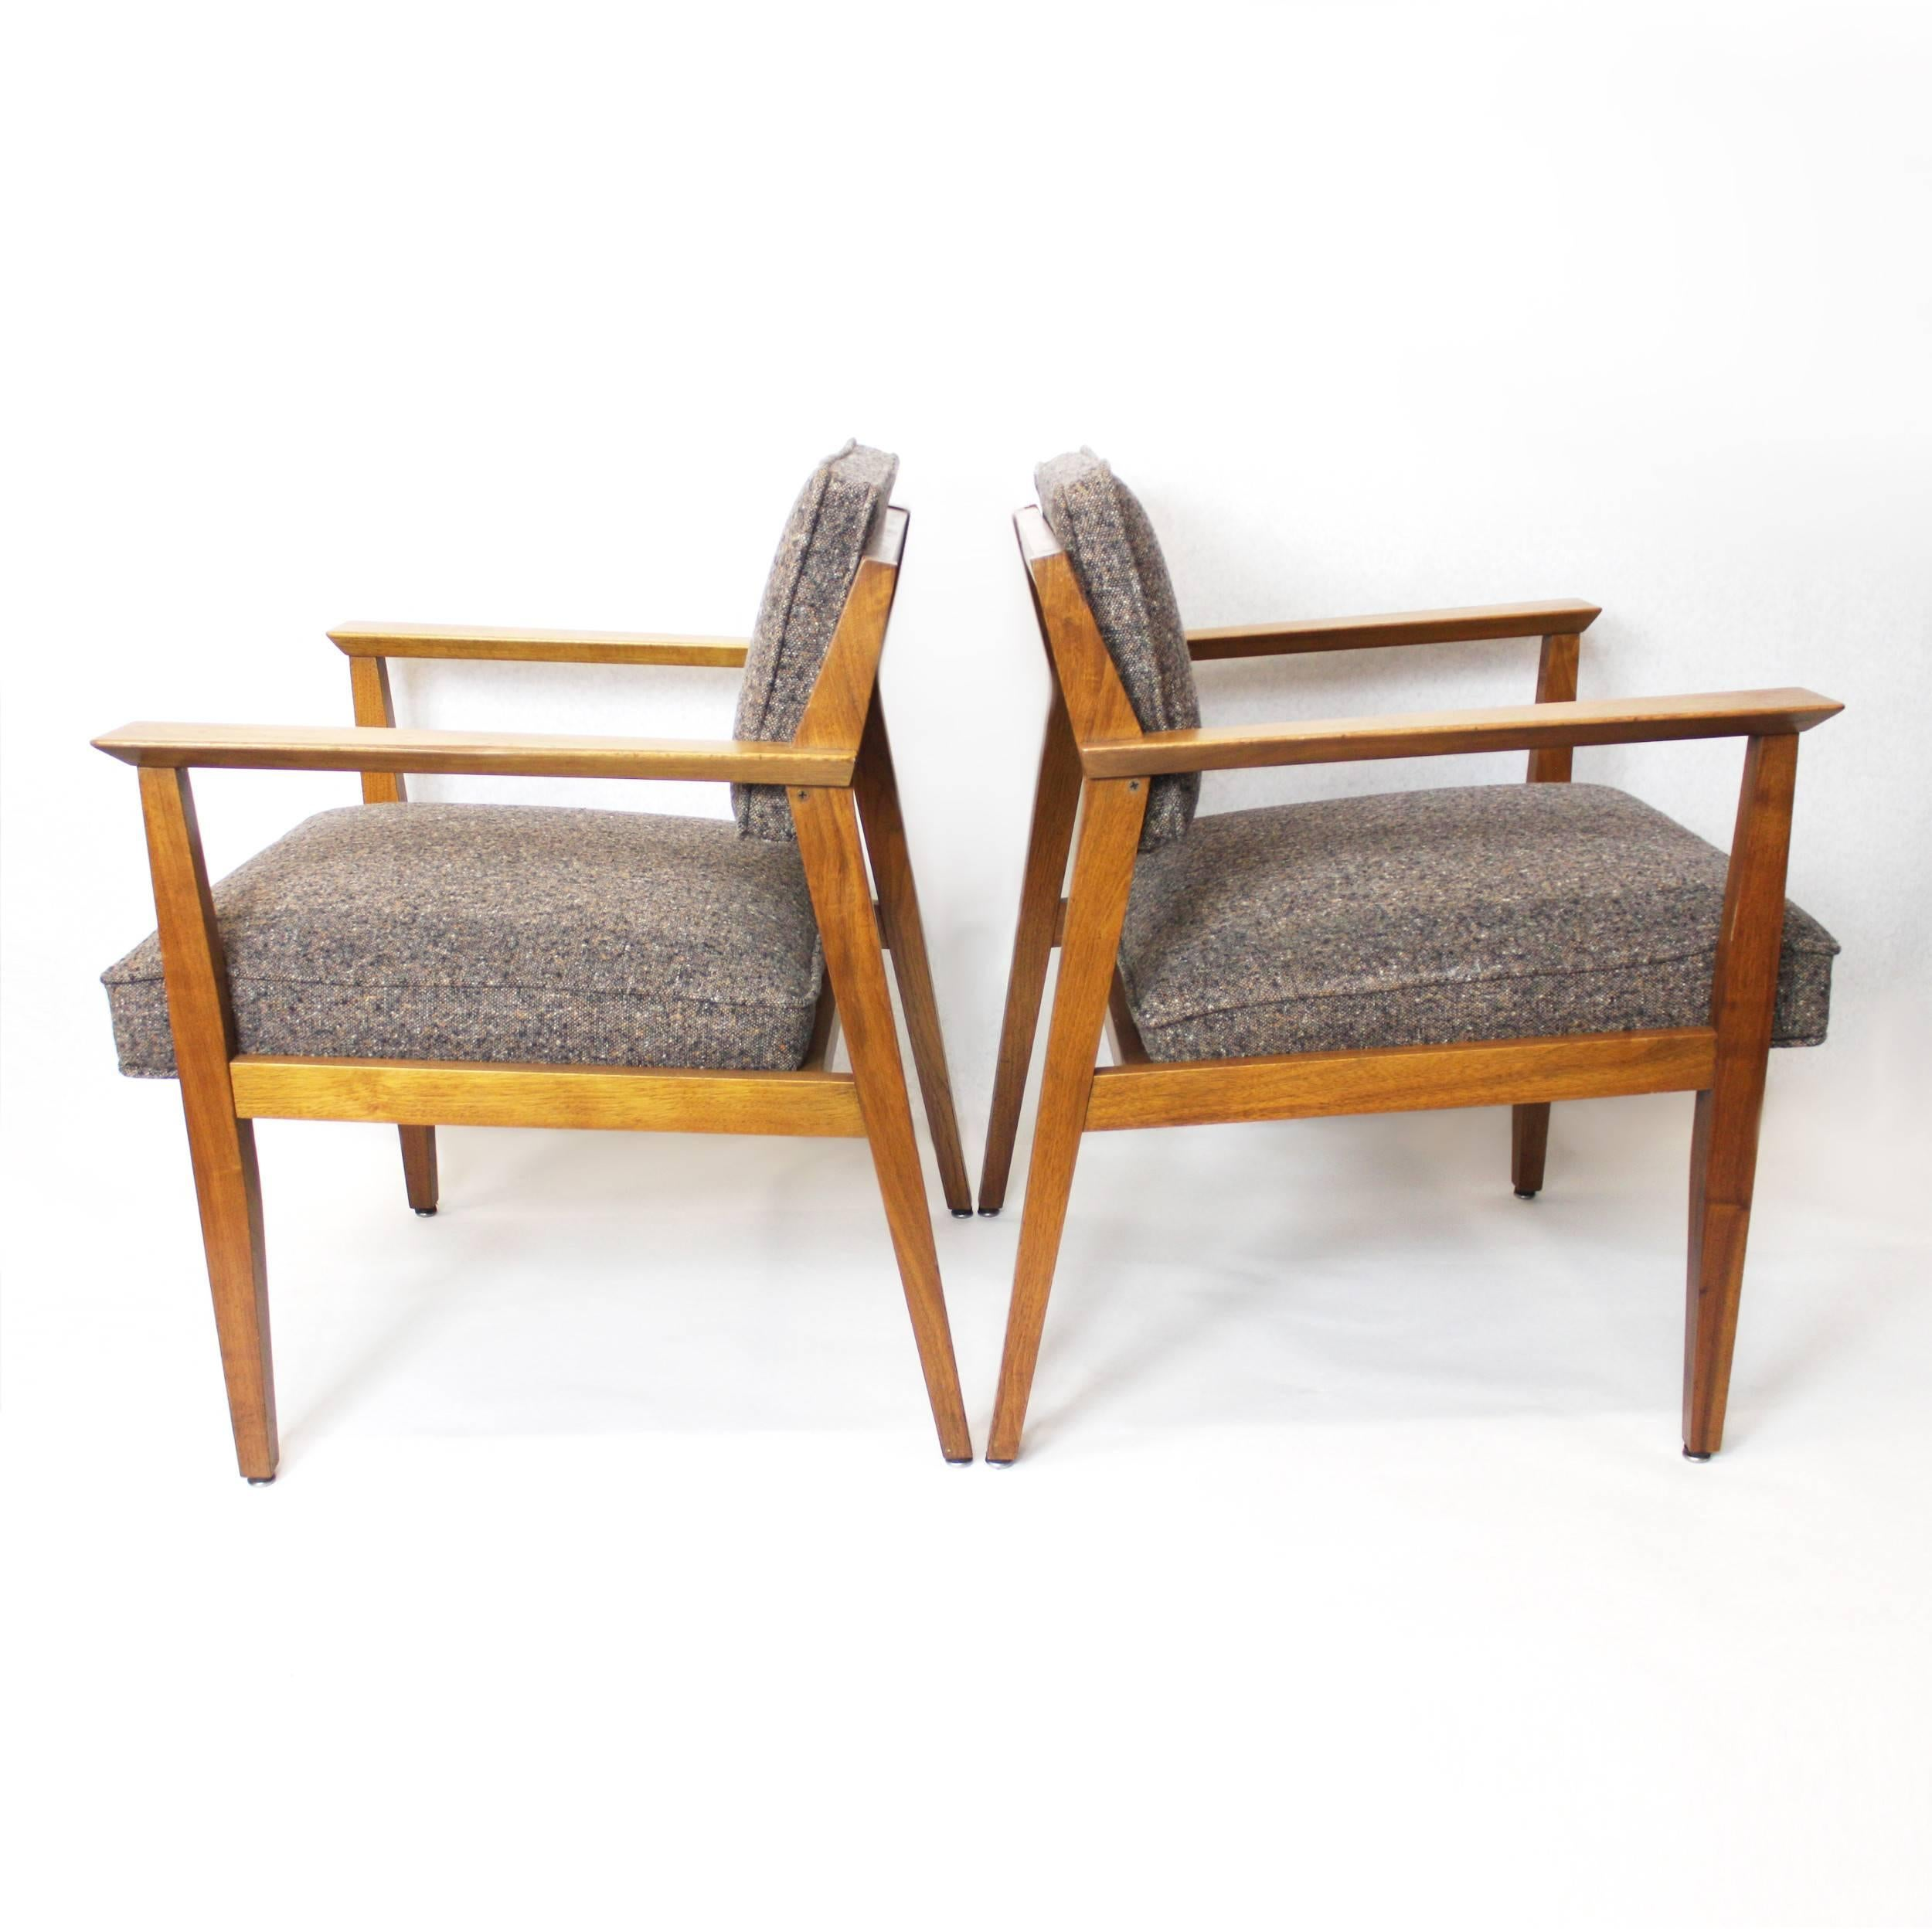 Fantastic Pair Of Mid Century Modern Walnut Lounge Chairs By Stow Davis For At 1stdibs